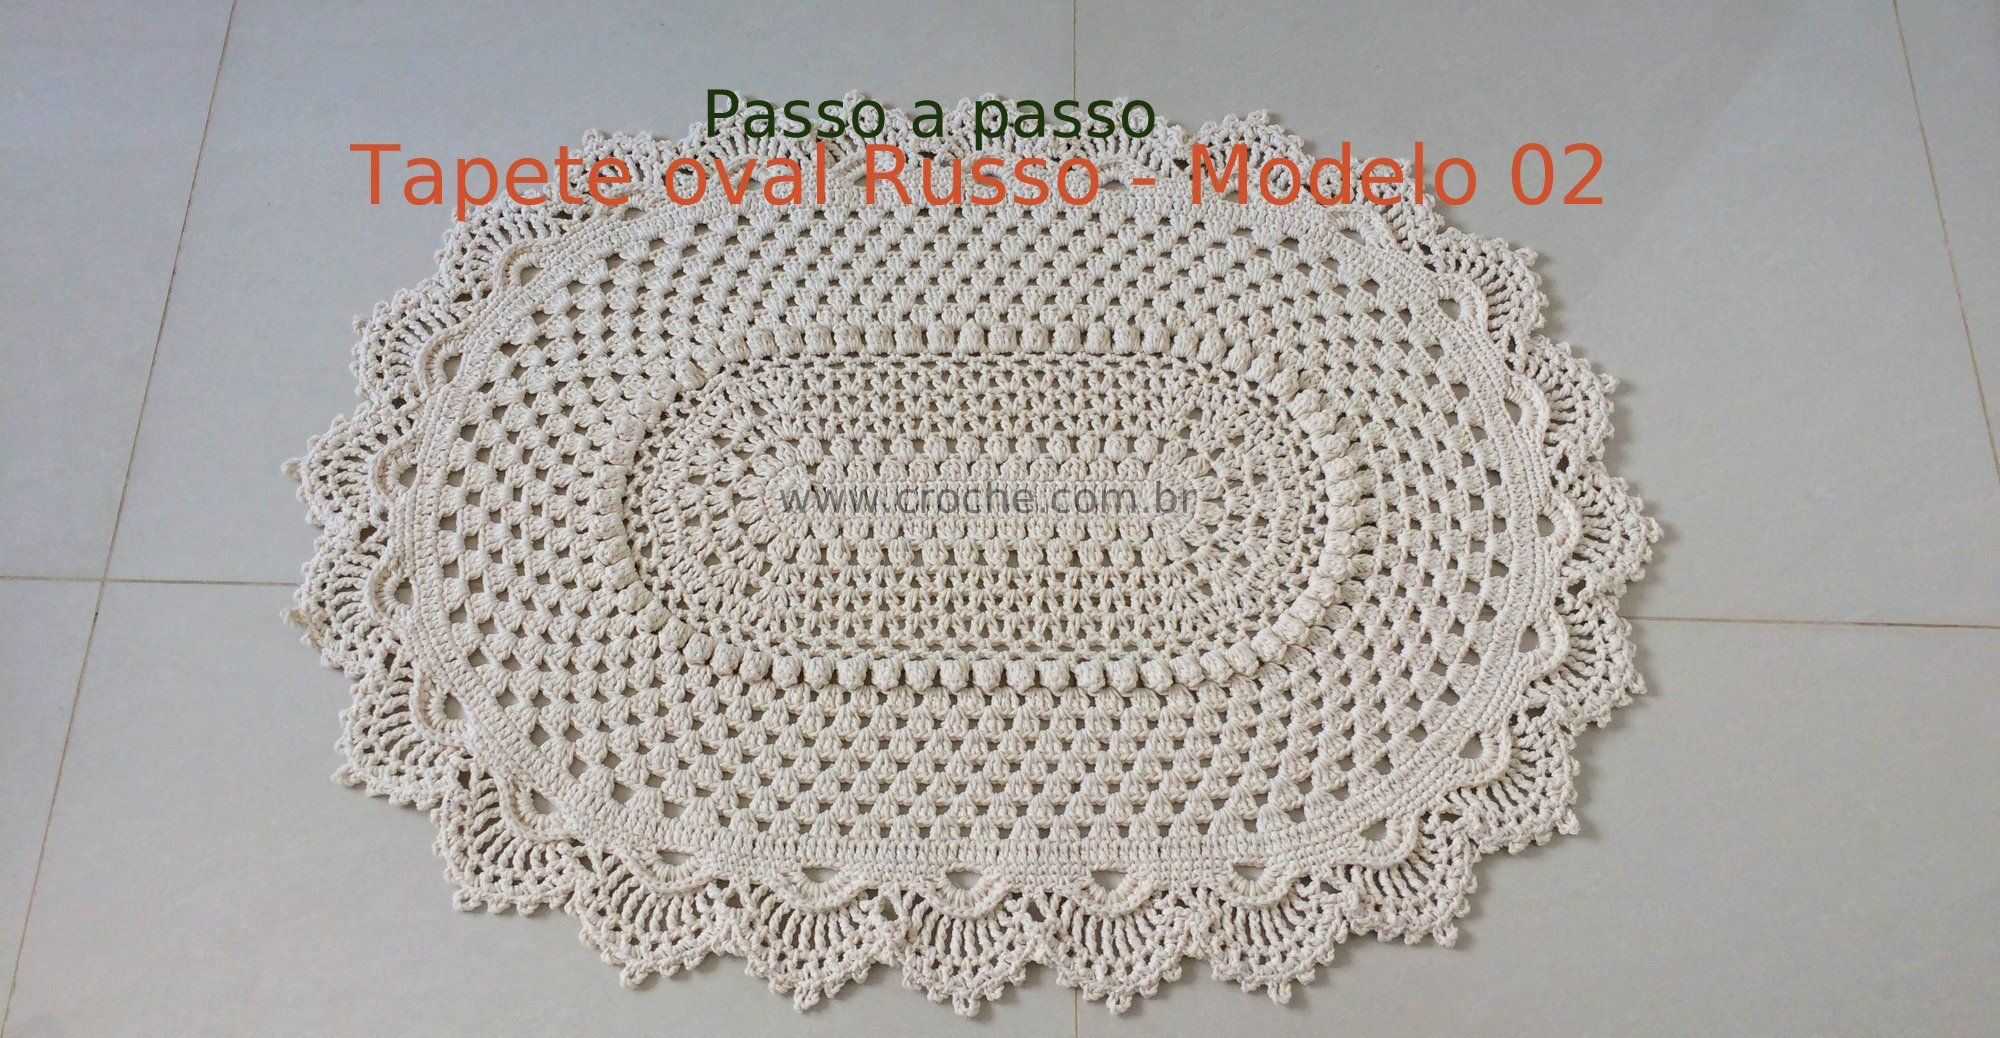 Tapete Oval Russo Modelo 2 Crochet Crochet Doilies And Crossstitch -> Tapete De Croche Oval Simples Passo A Passo